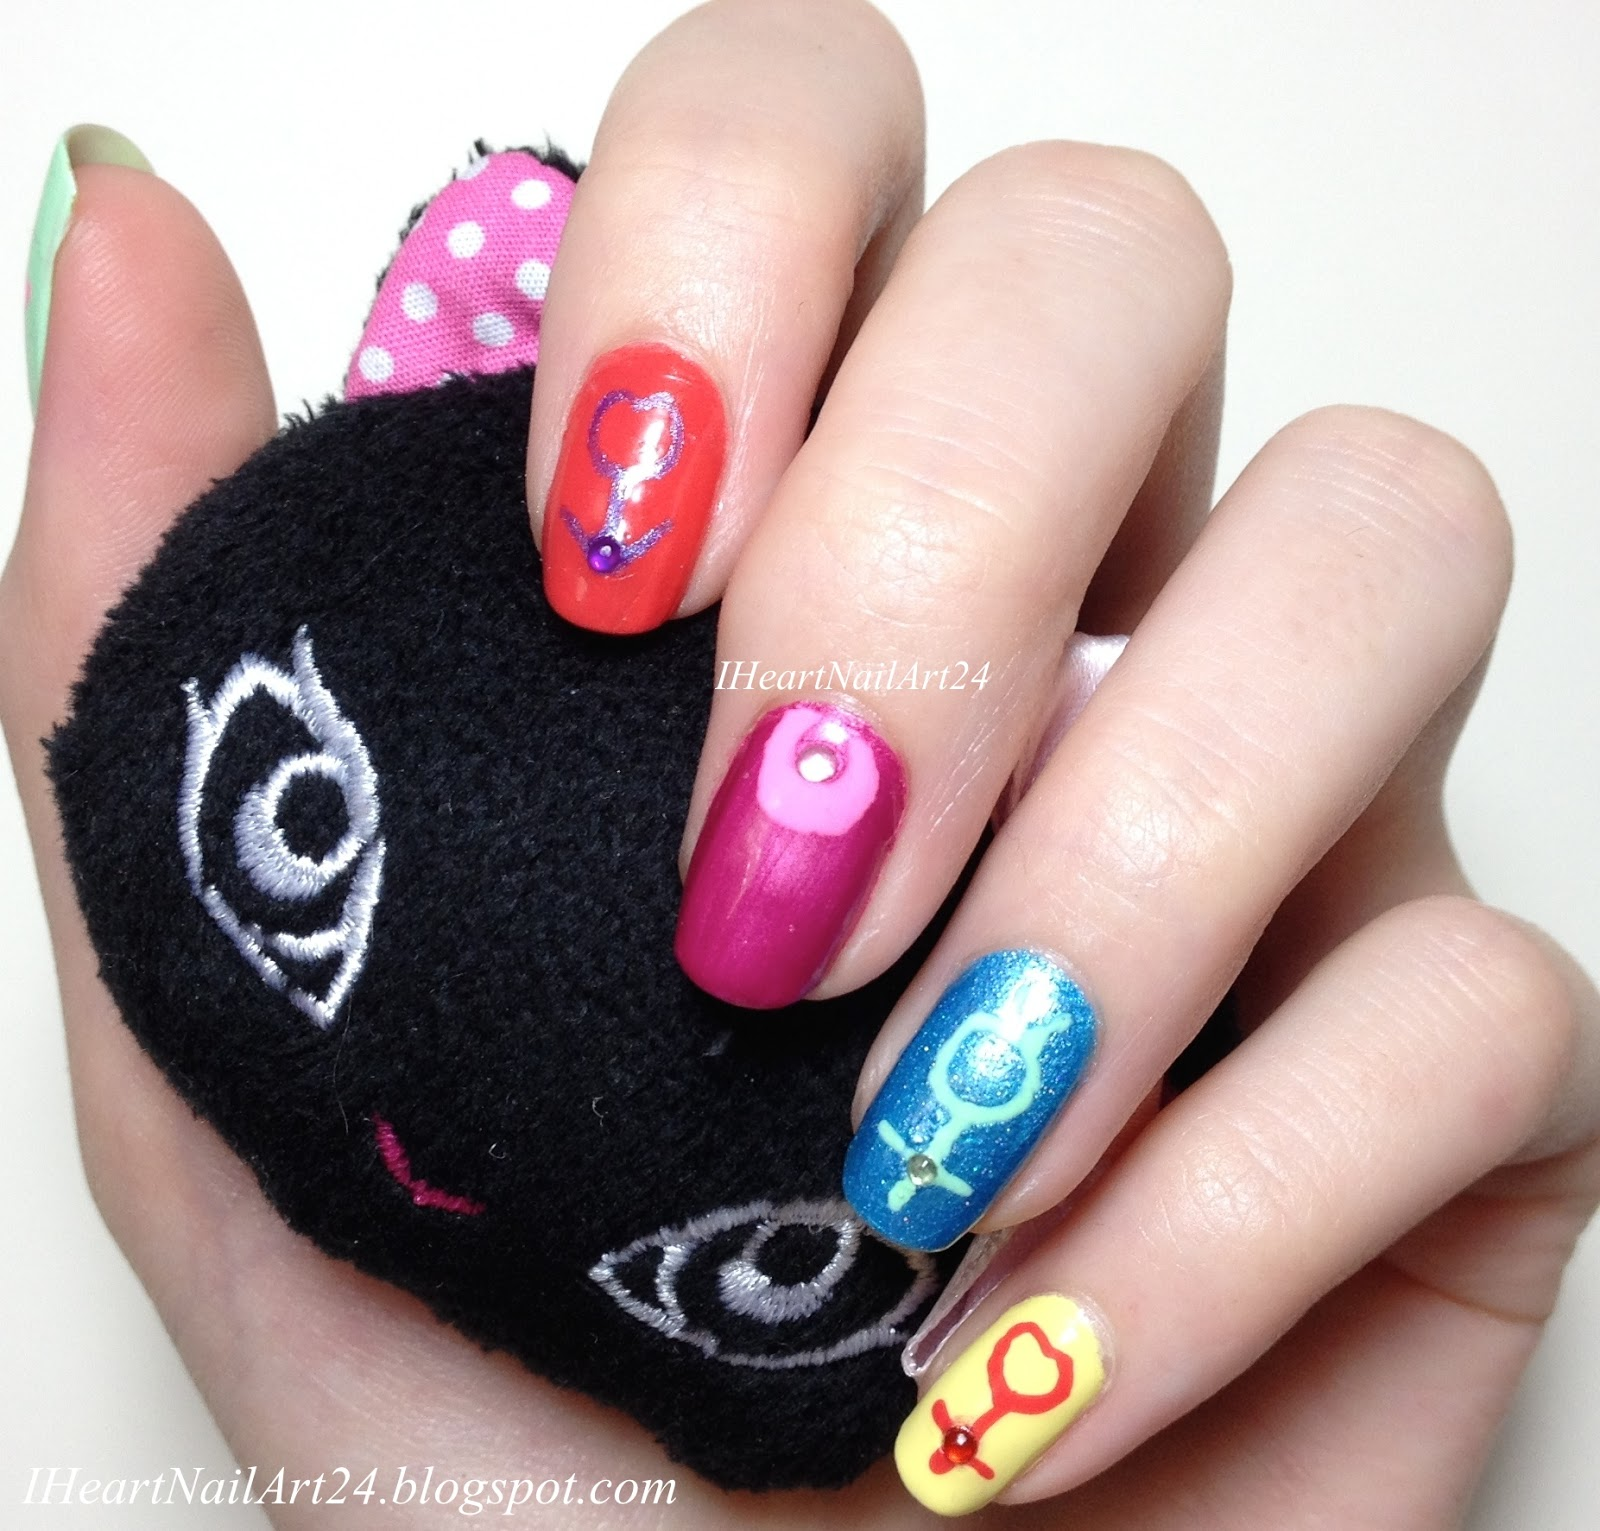 Sailor Moon Nail Art With Beme Nail Art Pens I Heart Nail Art